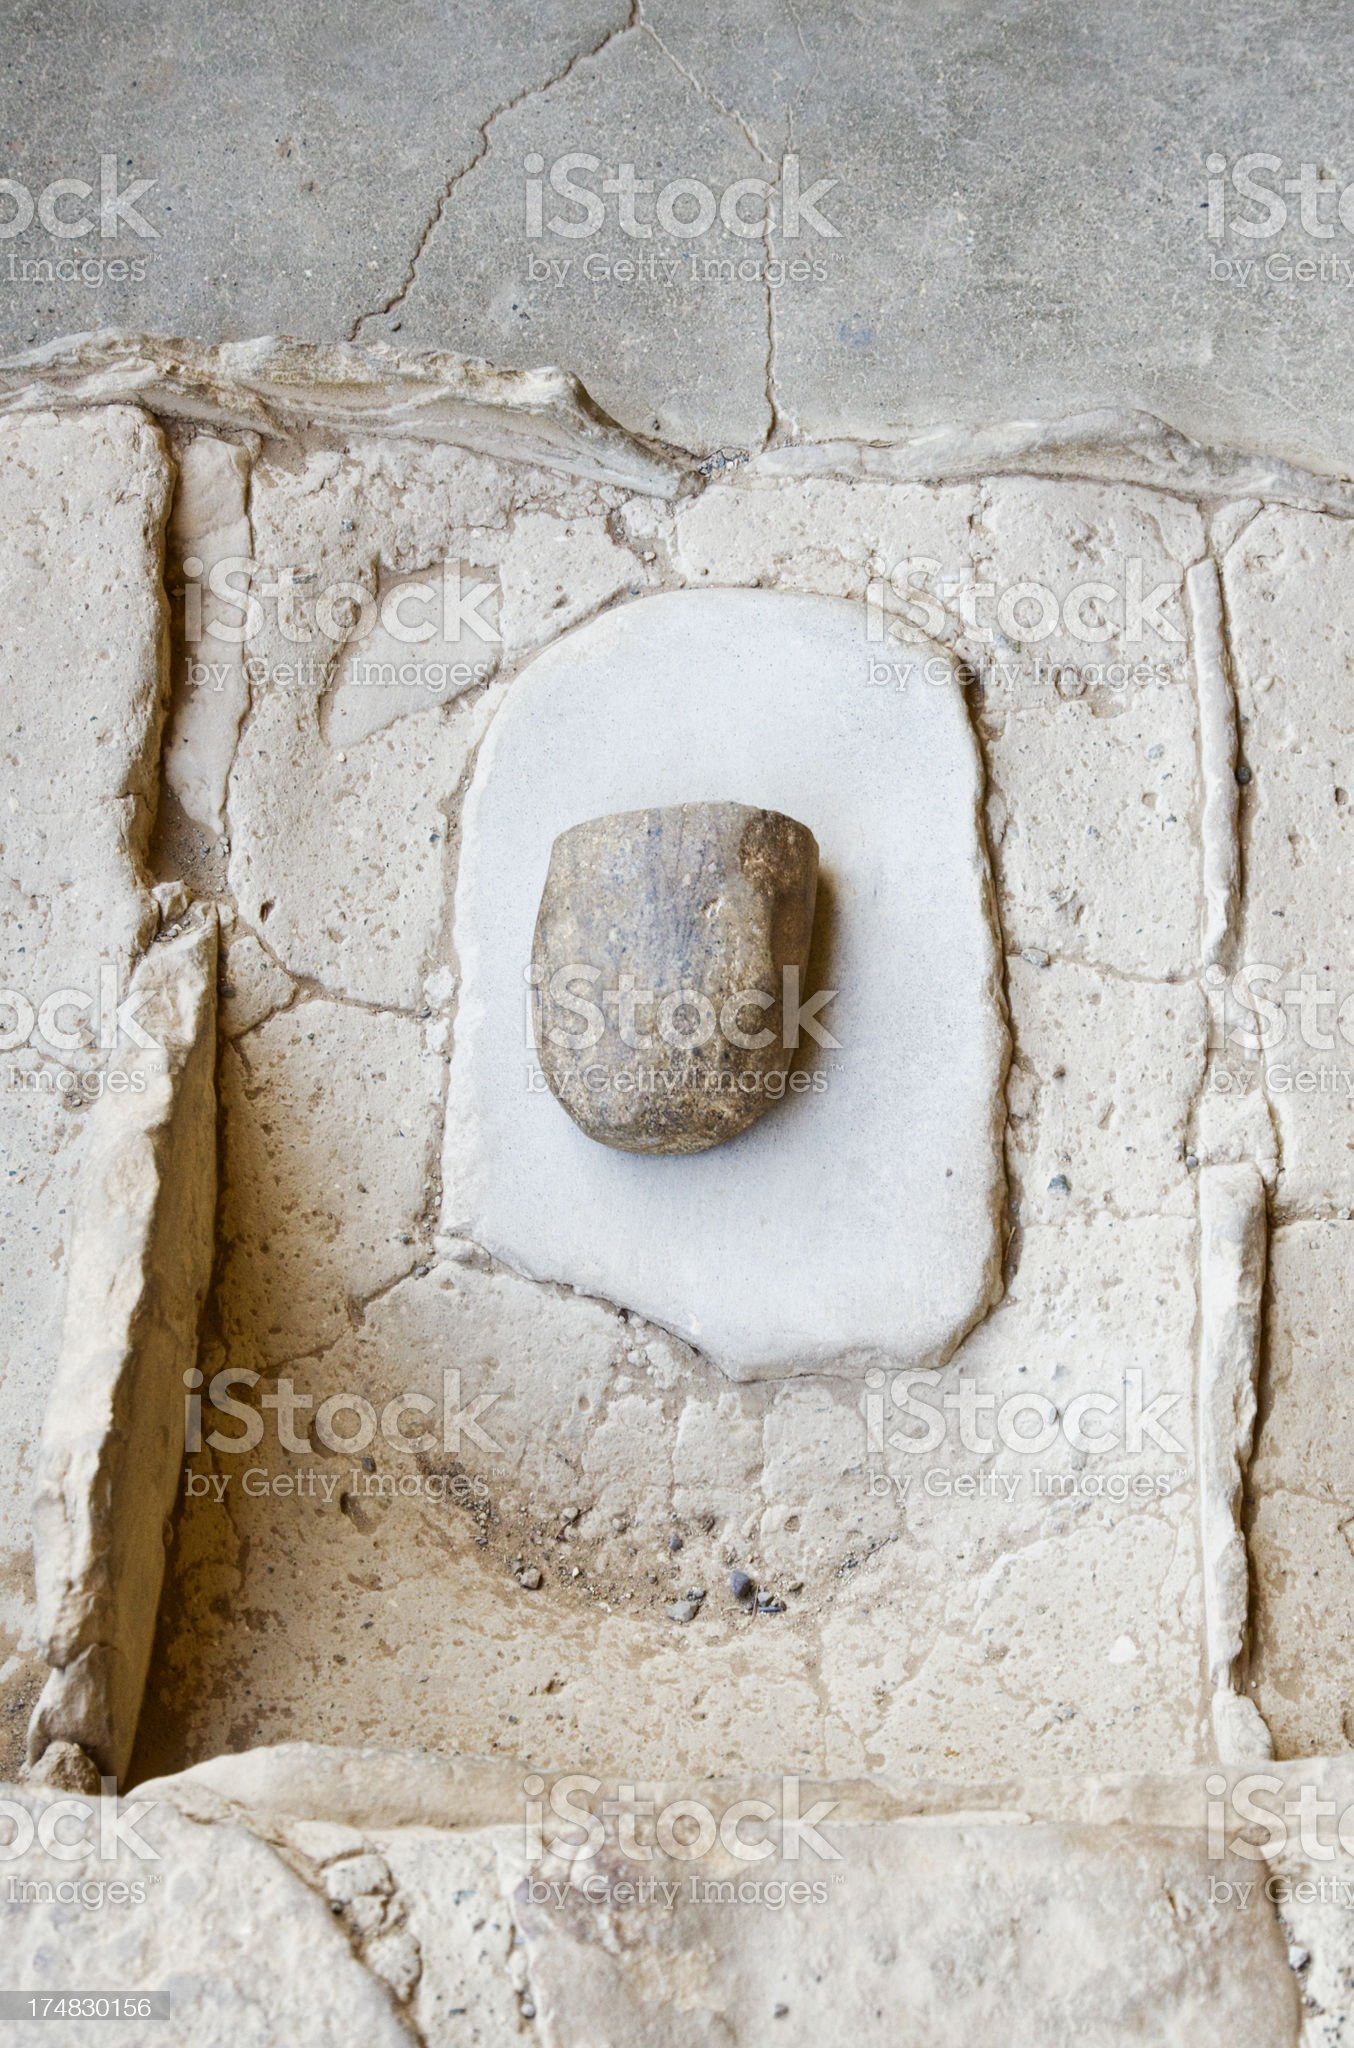 Pueblo Peoples Stone Grinding Tool royalty-free stock photo